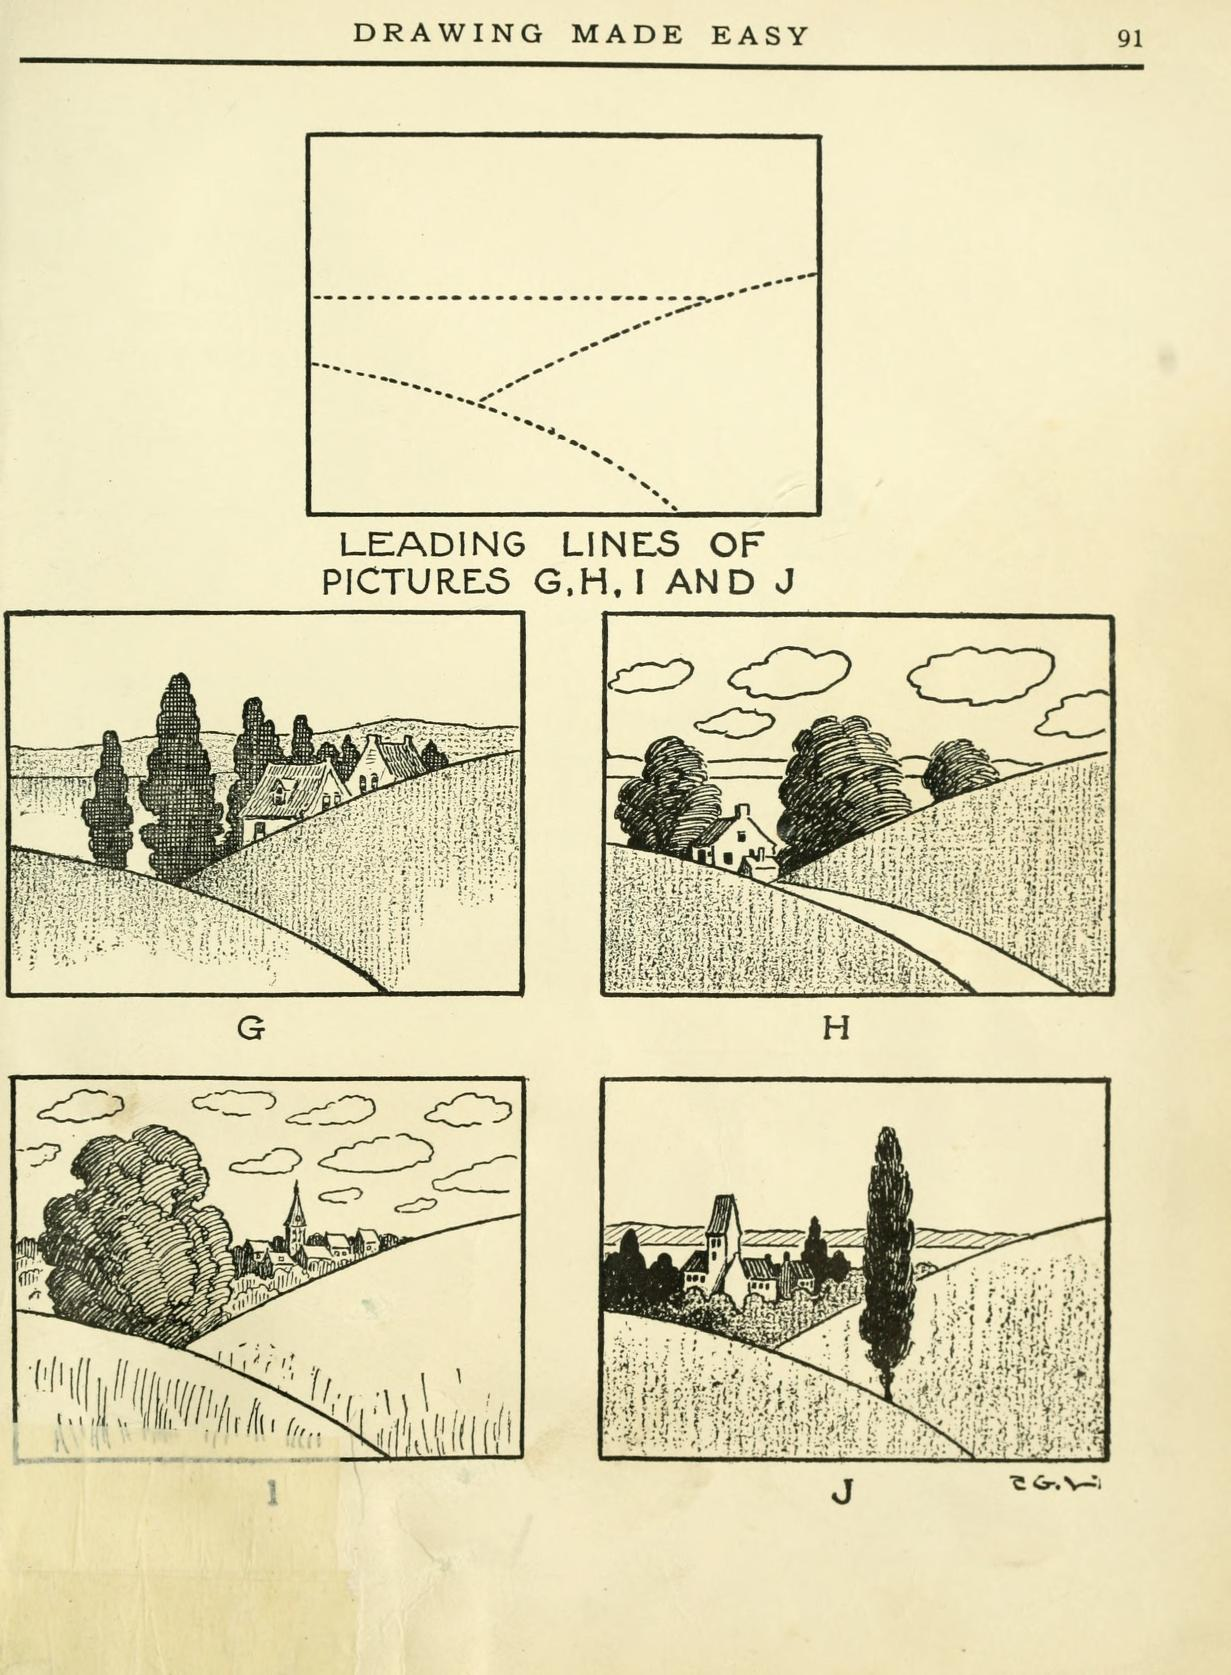 LEARN HOW TO DRAW A LANDSCAPE 2